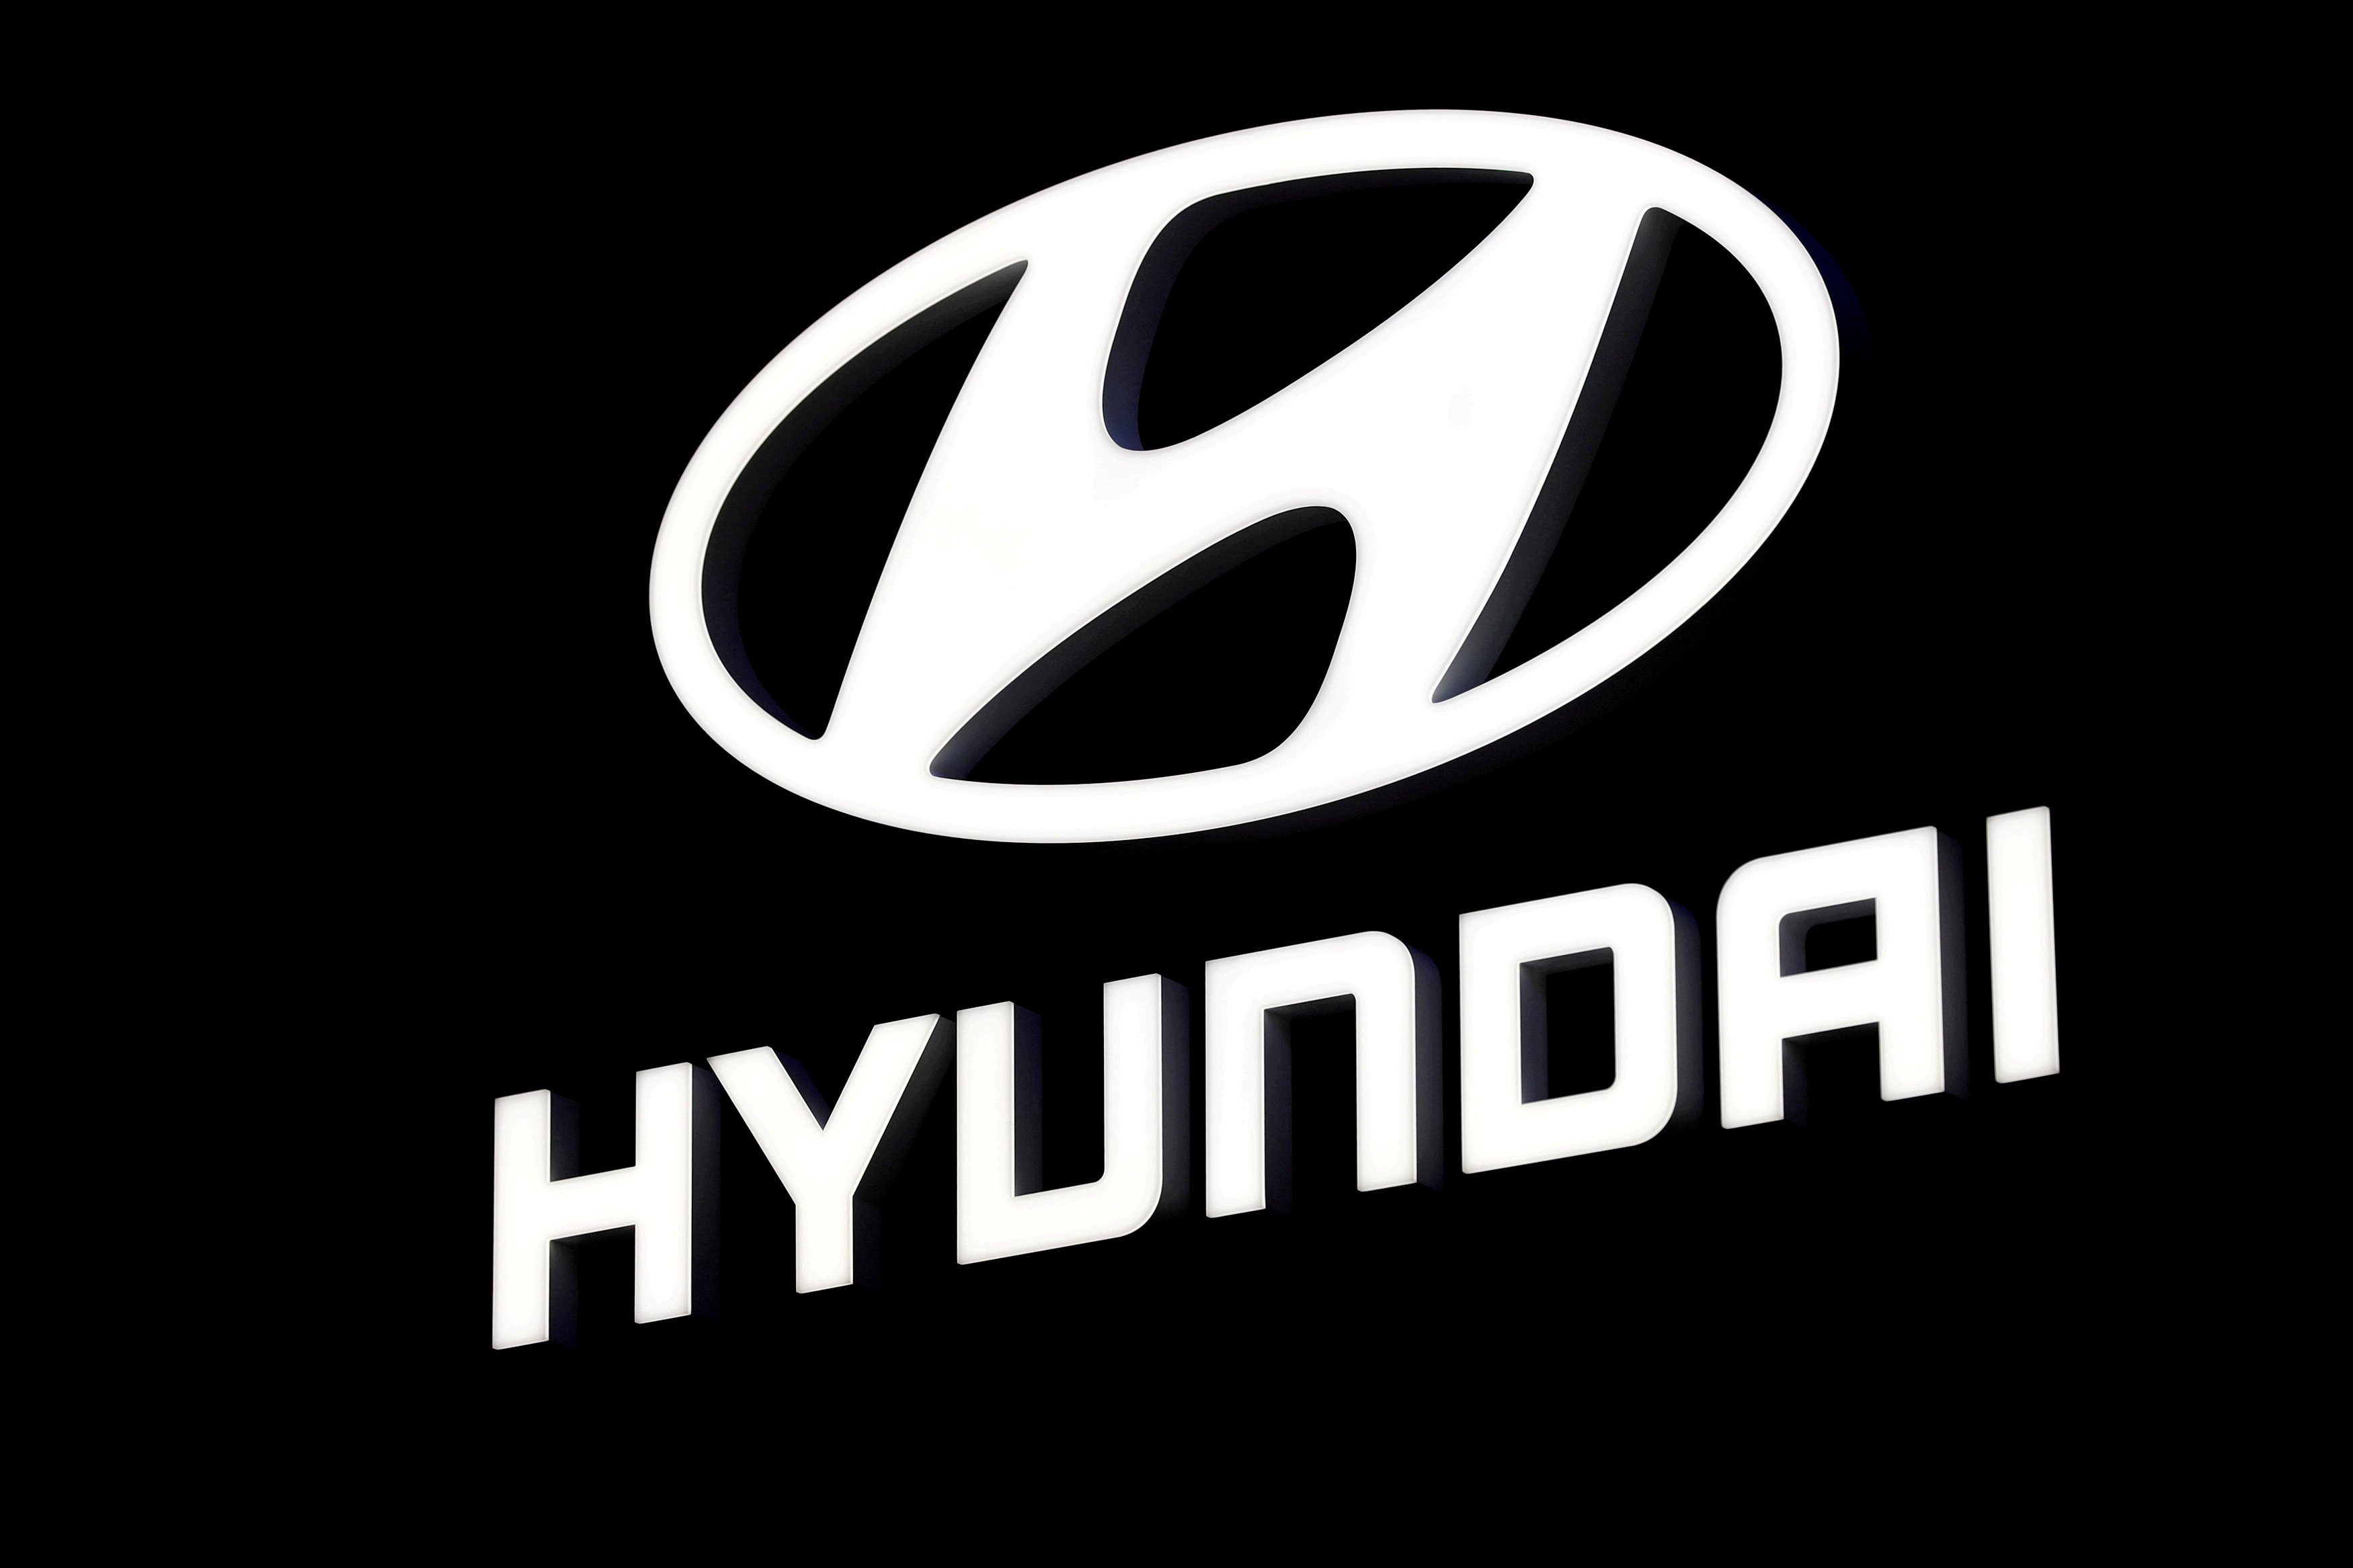 A Hyundai booth displays the company logo at the North American International Auto Show in Detroit, Michigan, U.S. January 16, 2018.  REUTERS/Jonathan Ernst